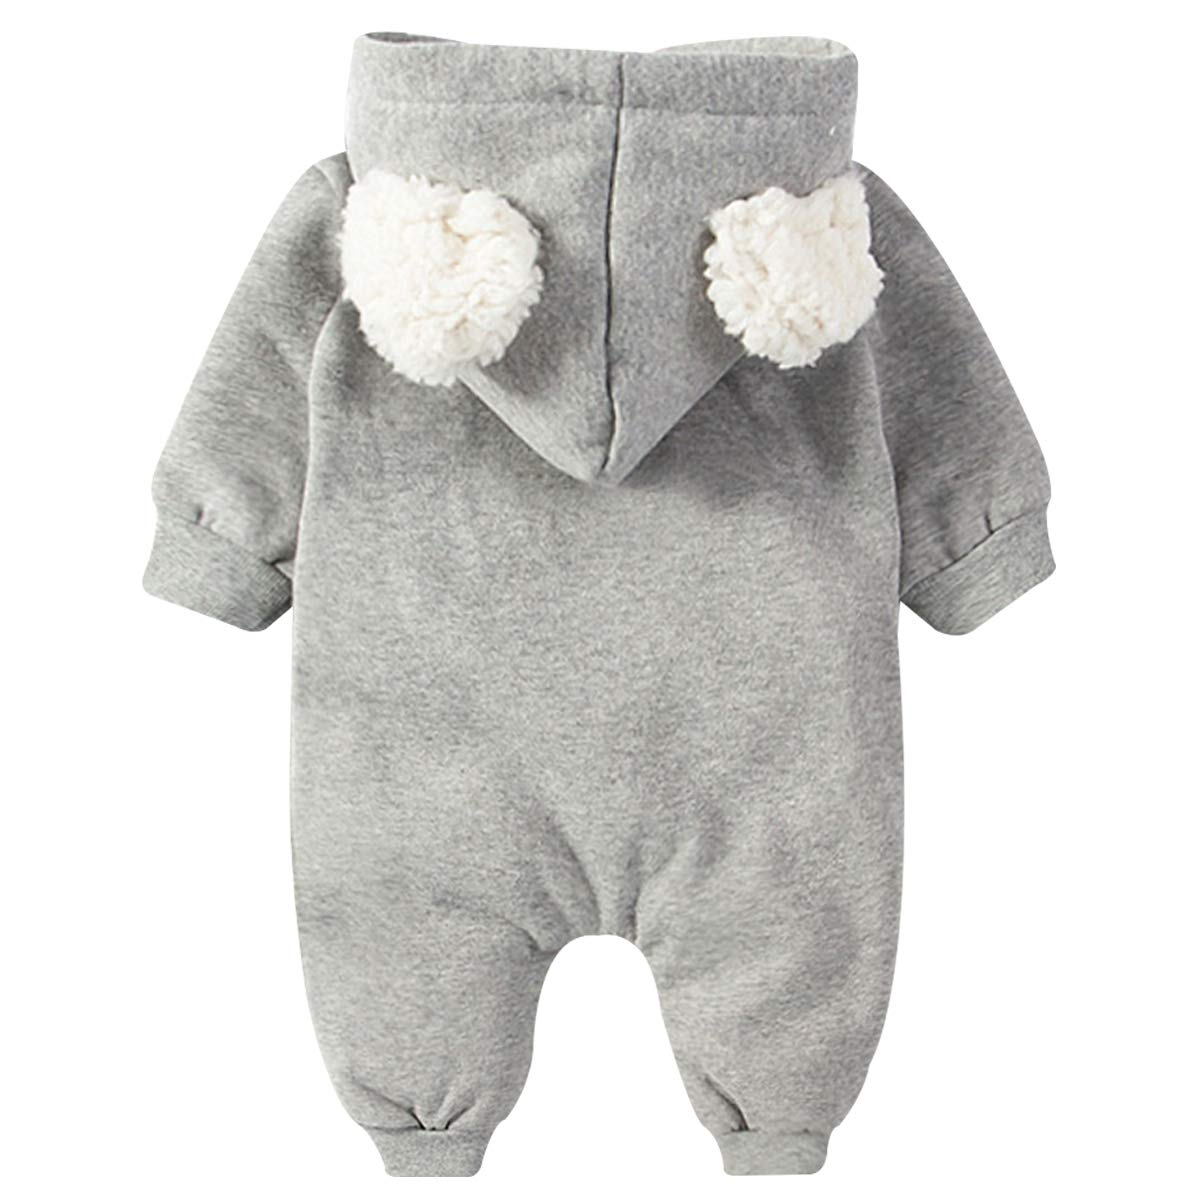 Famuka Baby Clothes Girls Boys Jumpsuit Outwear Winter Warm Romper